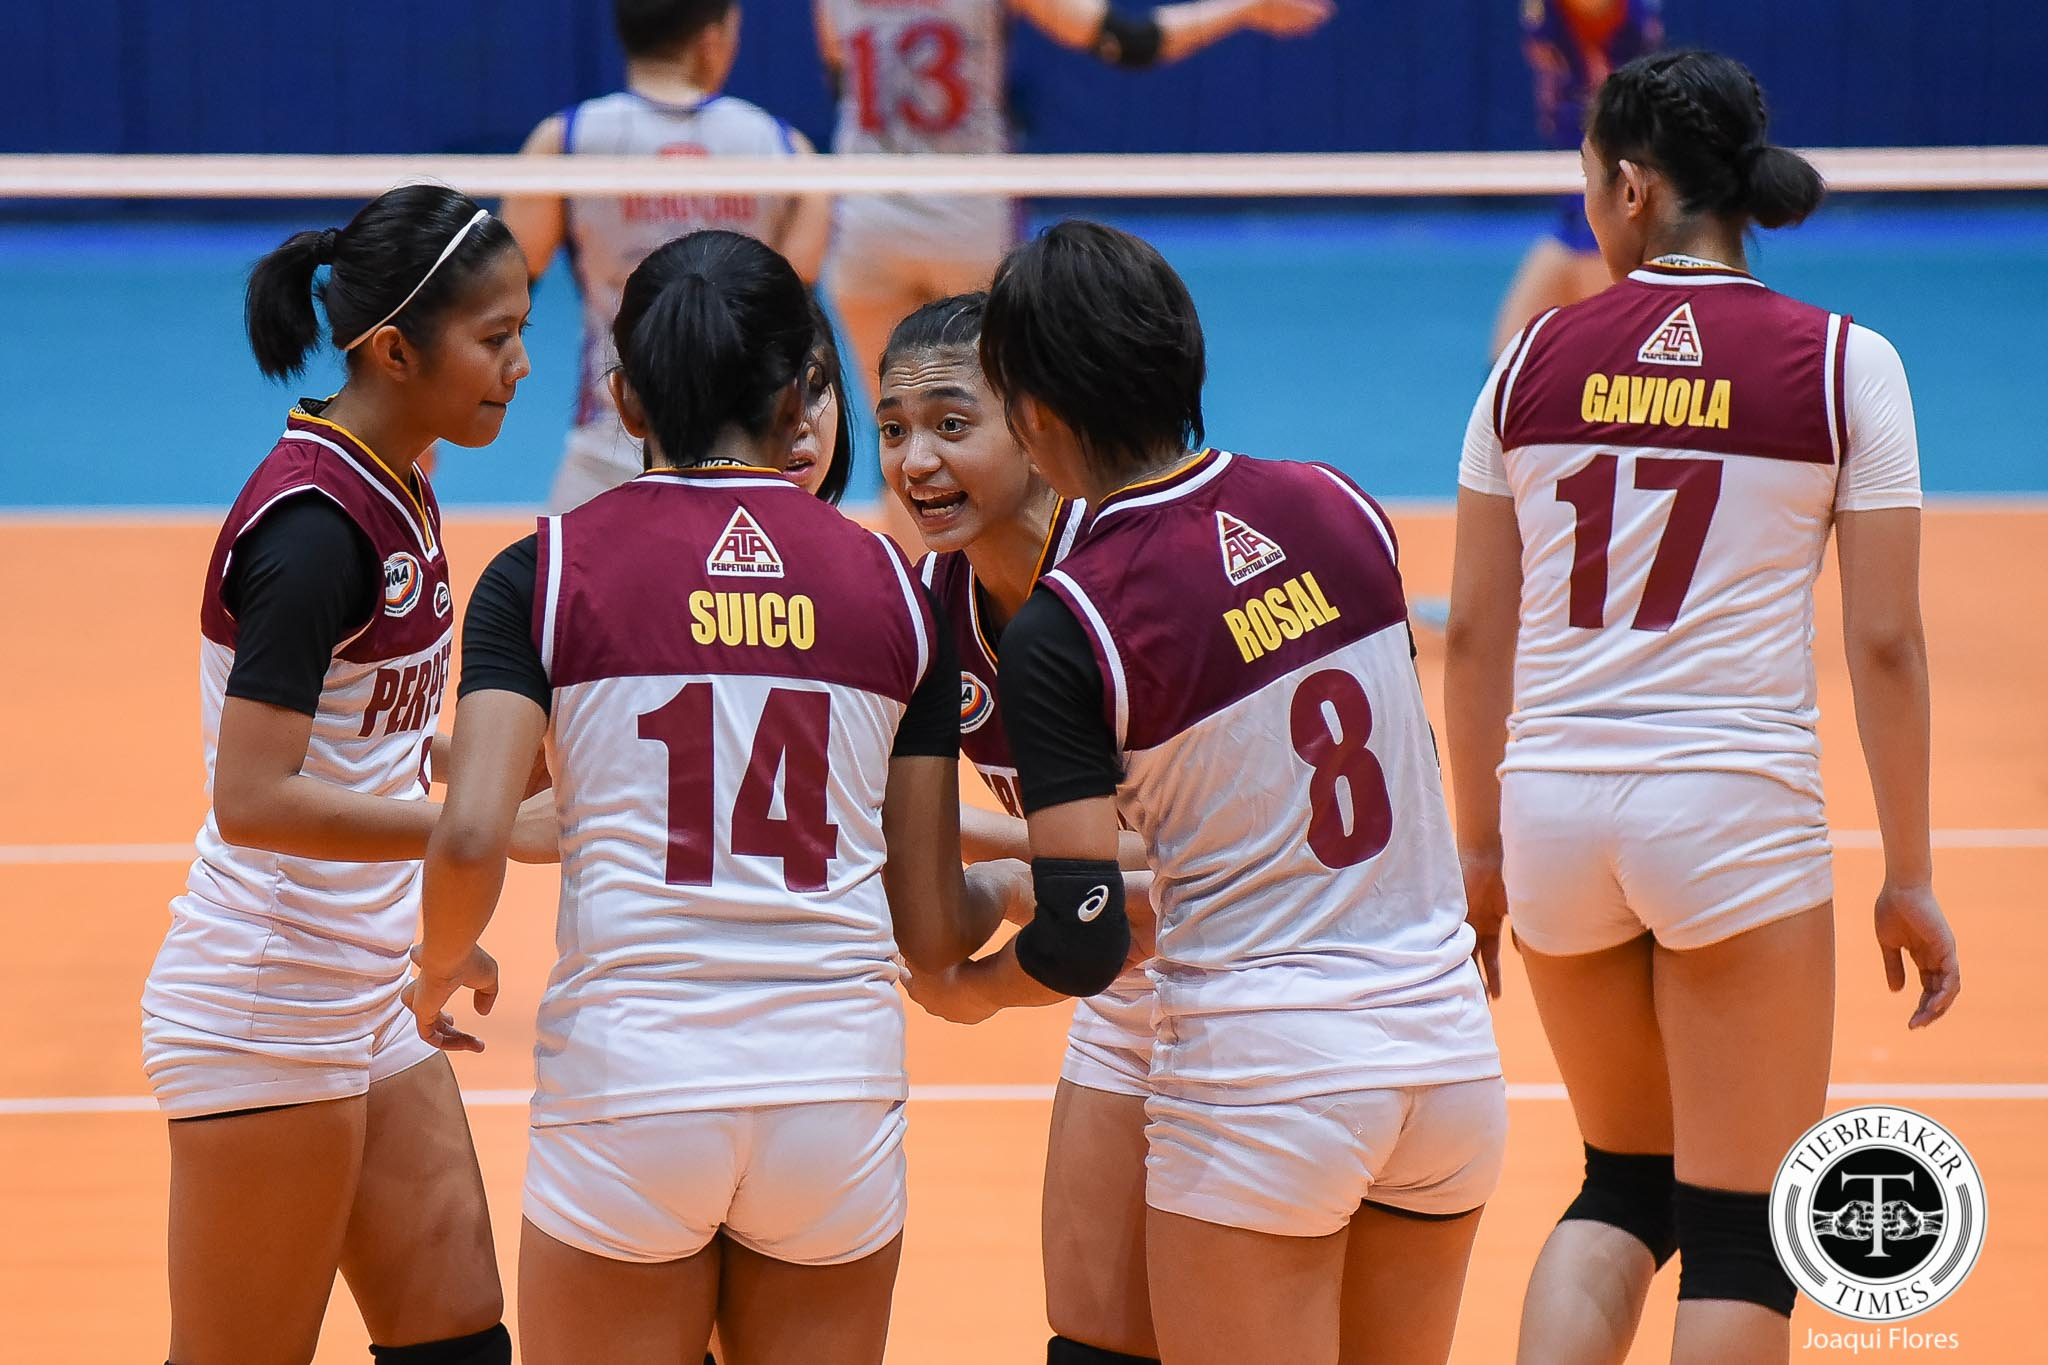 NCAA-94-Finals-G2-UPHSD-vs.-AU-Gual-5476 Chery Tiggo signs Luna, Angeles, Gual for PVL title defense News PVL Volleyball  - philippine sports news